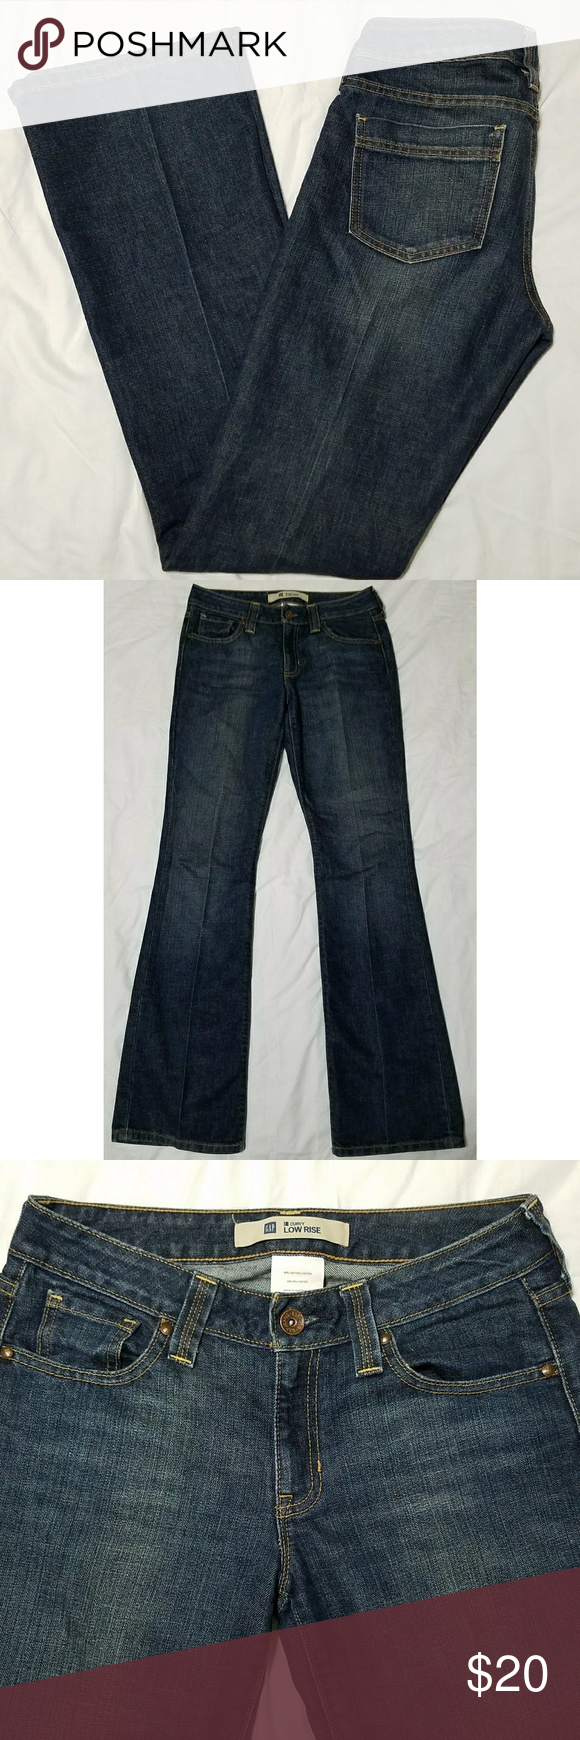 """Gap Curvy Low Rise Flare Jeans Long Inseam Women's Gap Curvy Low Rise flare jeans, size 6 long. They are in excellent used condition with no stains, tears, rips or holes that I can see.  80% cotton/20% polyester   Waist: 30"""" Inseam: 35"""" Outseam: 44"""" Front rise: 8.5"""" Back rise: 14"""" Hips: 39"""" Leg opening: 19""""  All items come from a smoke and pet free home. GAP Jeans Flare & Wide Leg"""